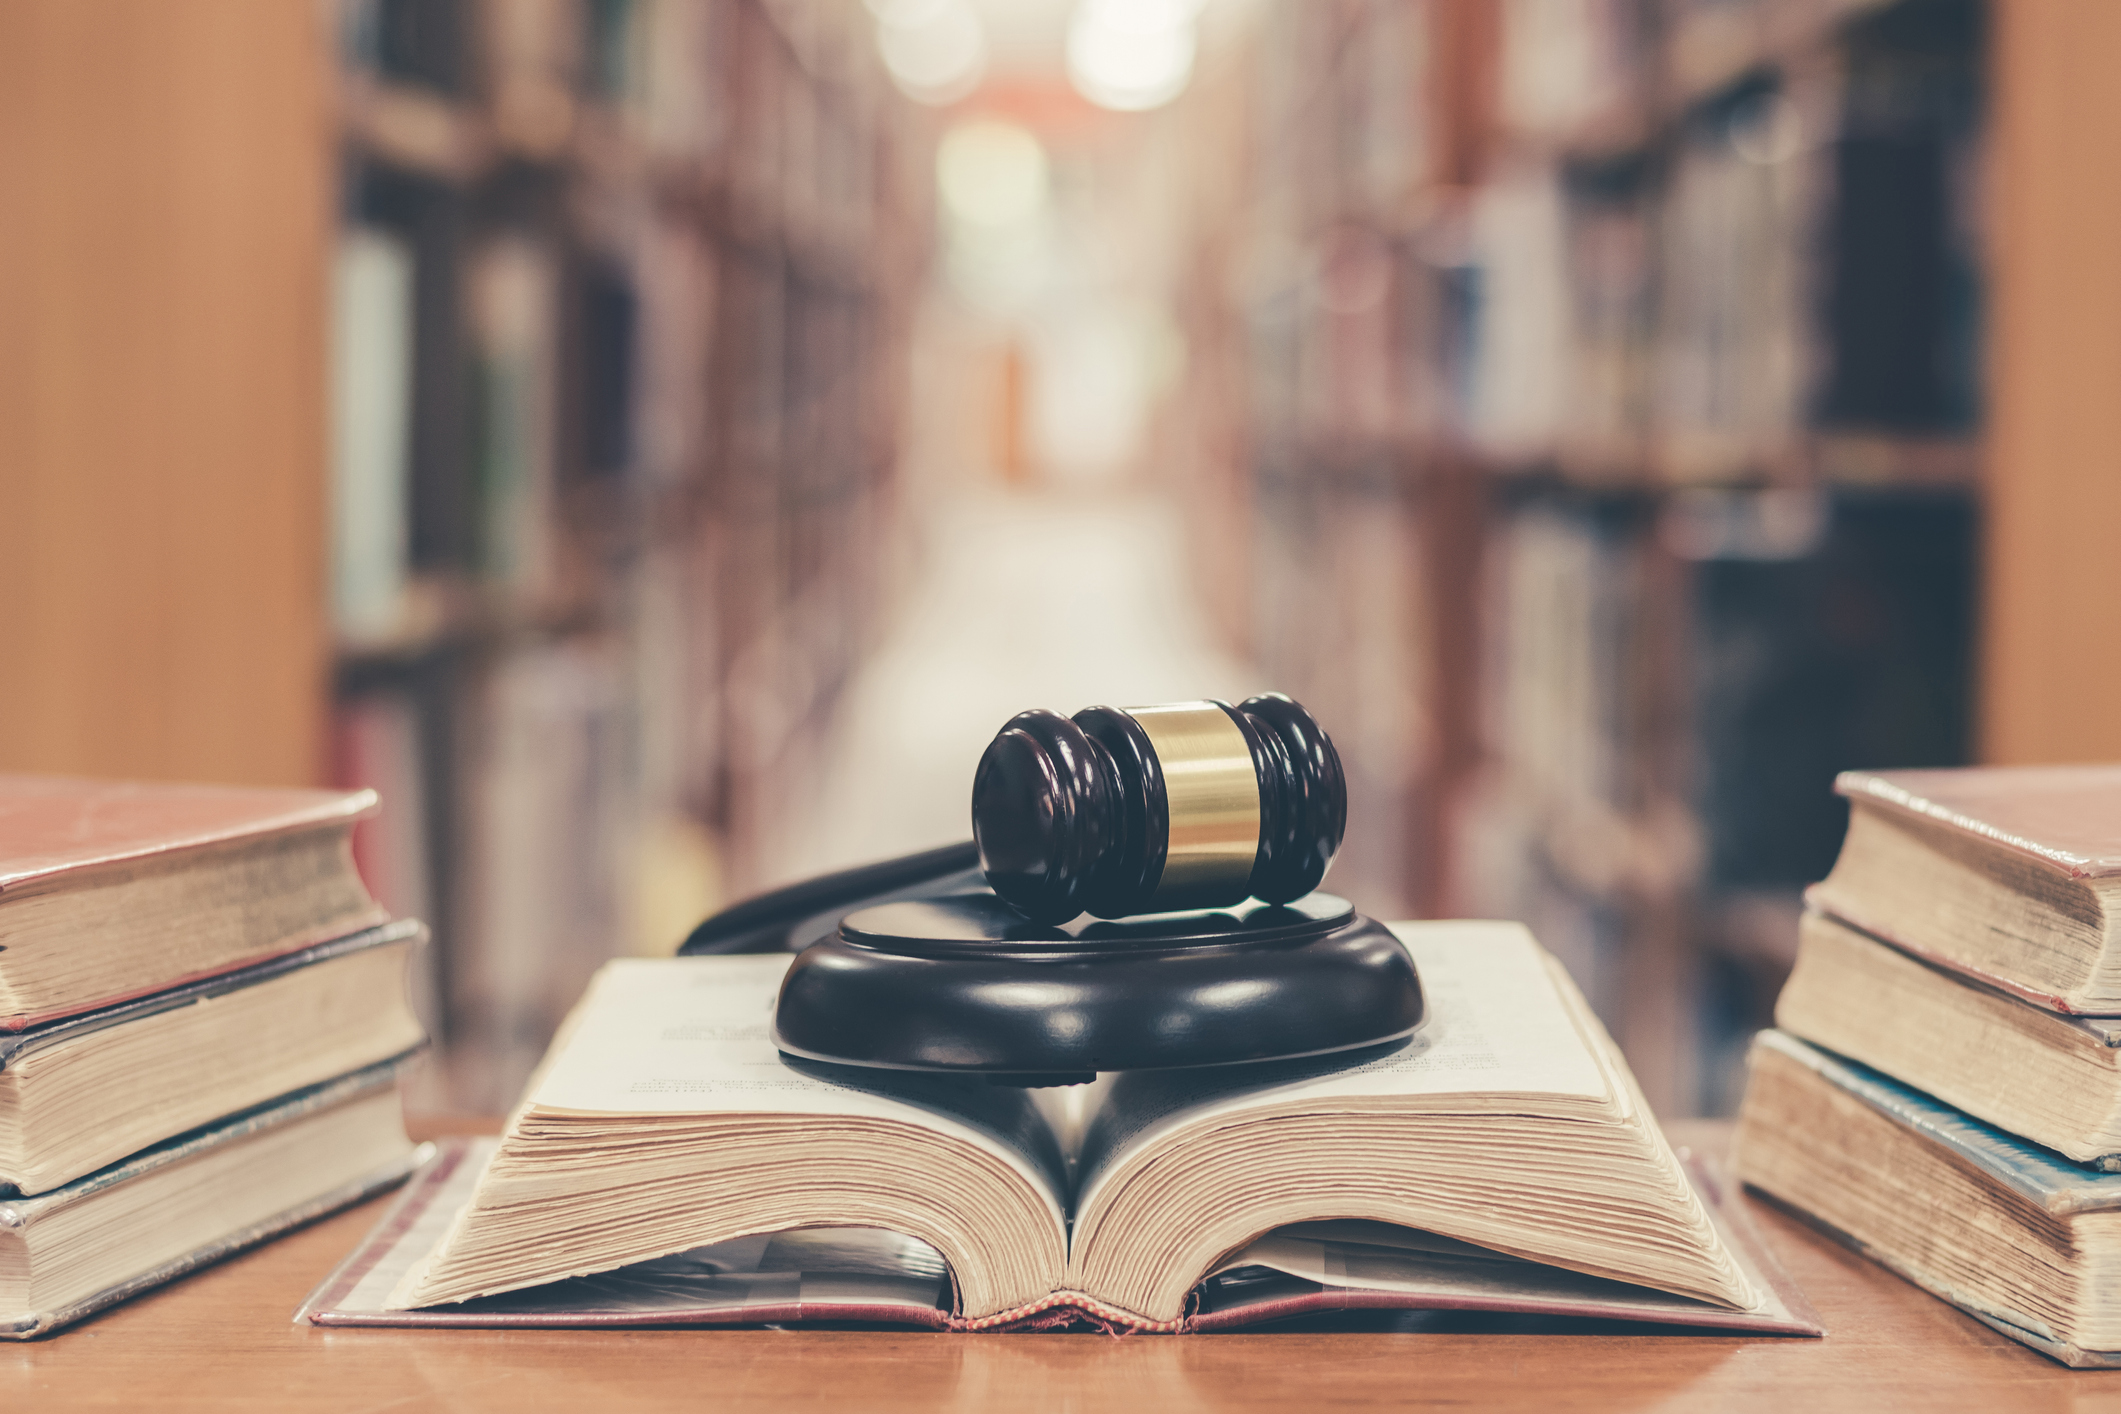 Judge gavel on book in library